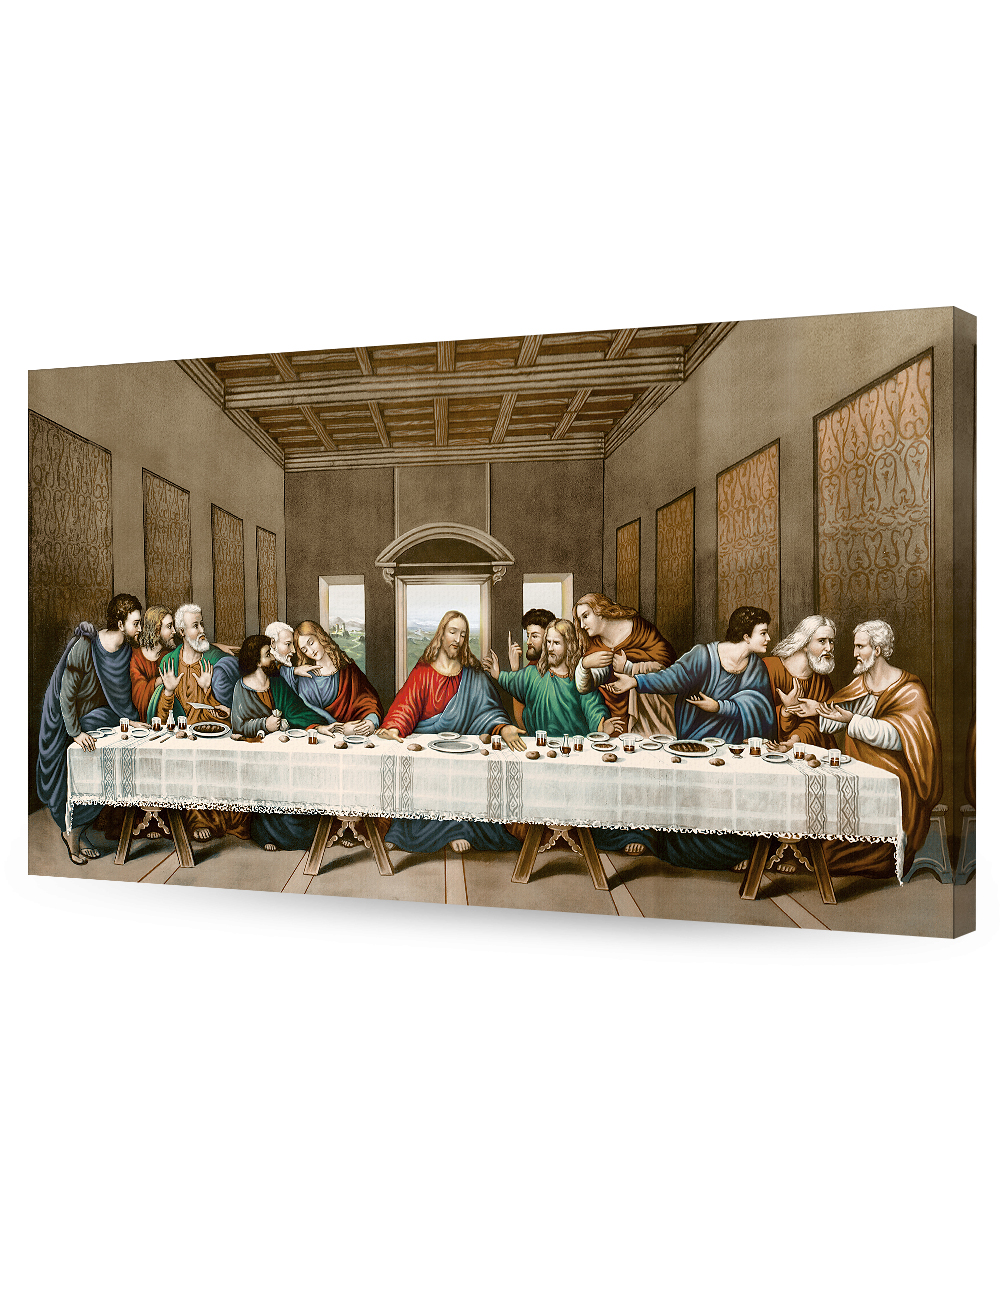 Decorarts The Last Supper Reproductions Giclee Print